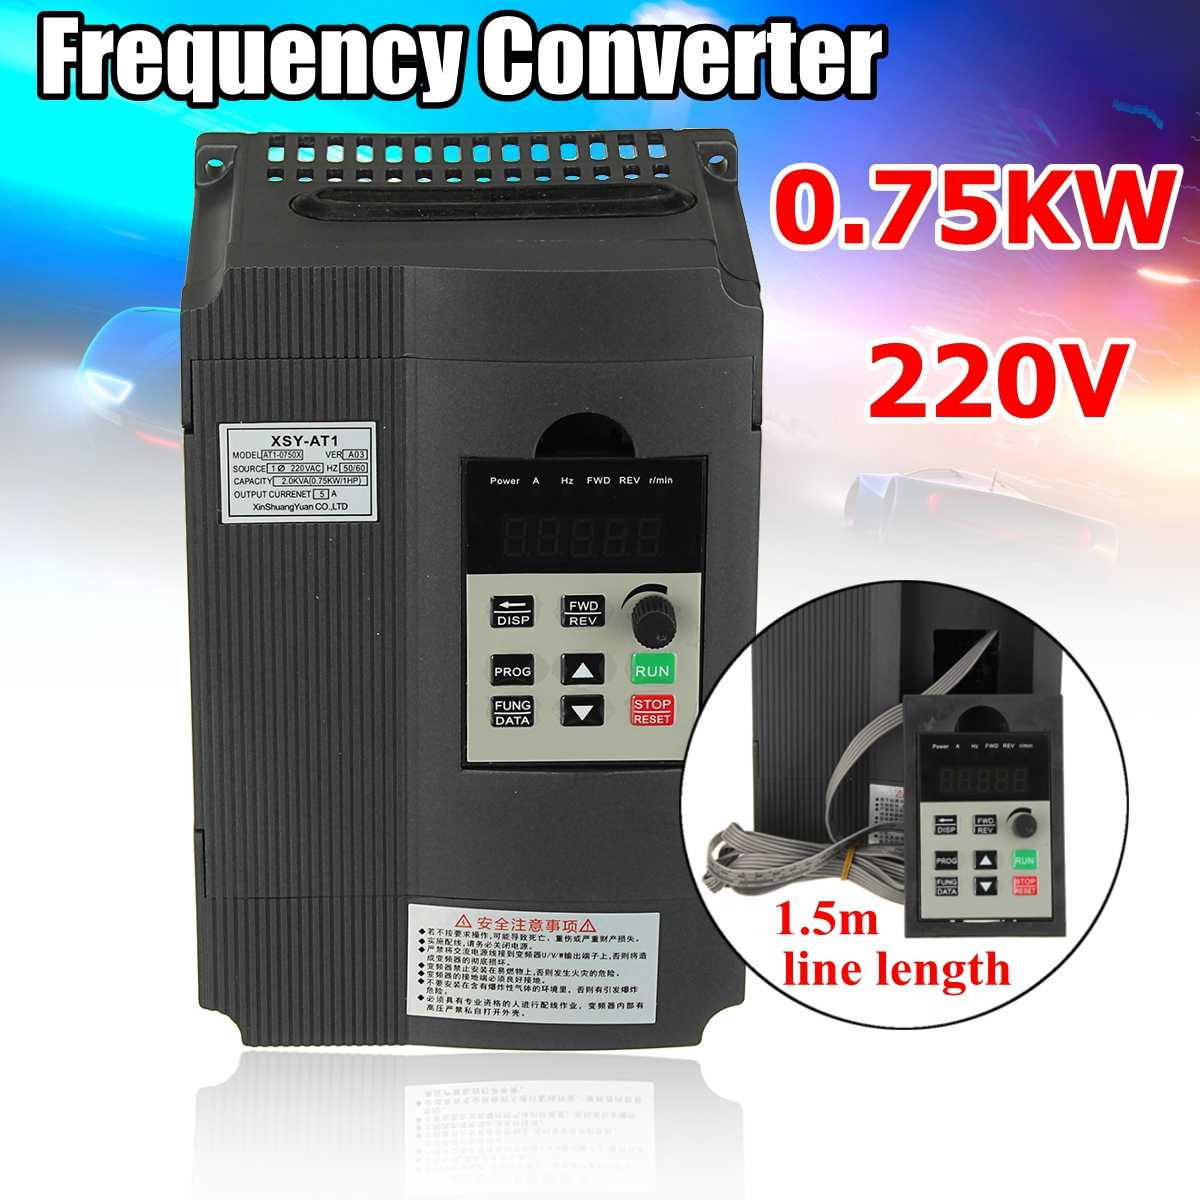 Spindle motor speed control 220v 0.75kw VFD Variable Frequency Drive VFD 1HP Input 3HP Frequency Inverter For MotorSpindle motor speed control 220v 0.75kw VFD Variable Frequency Drive VFD 1HP Input 3HP Frequency Inverter For Motor